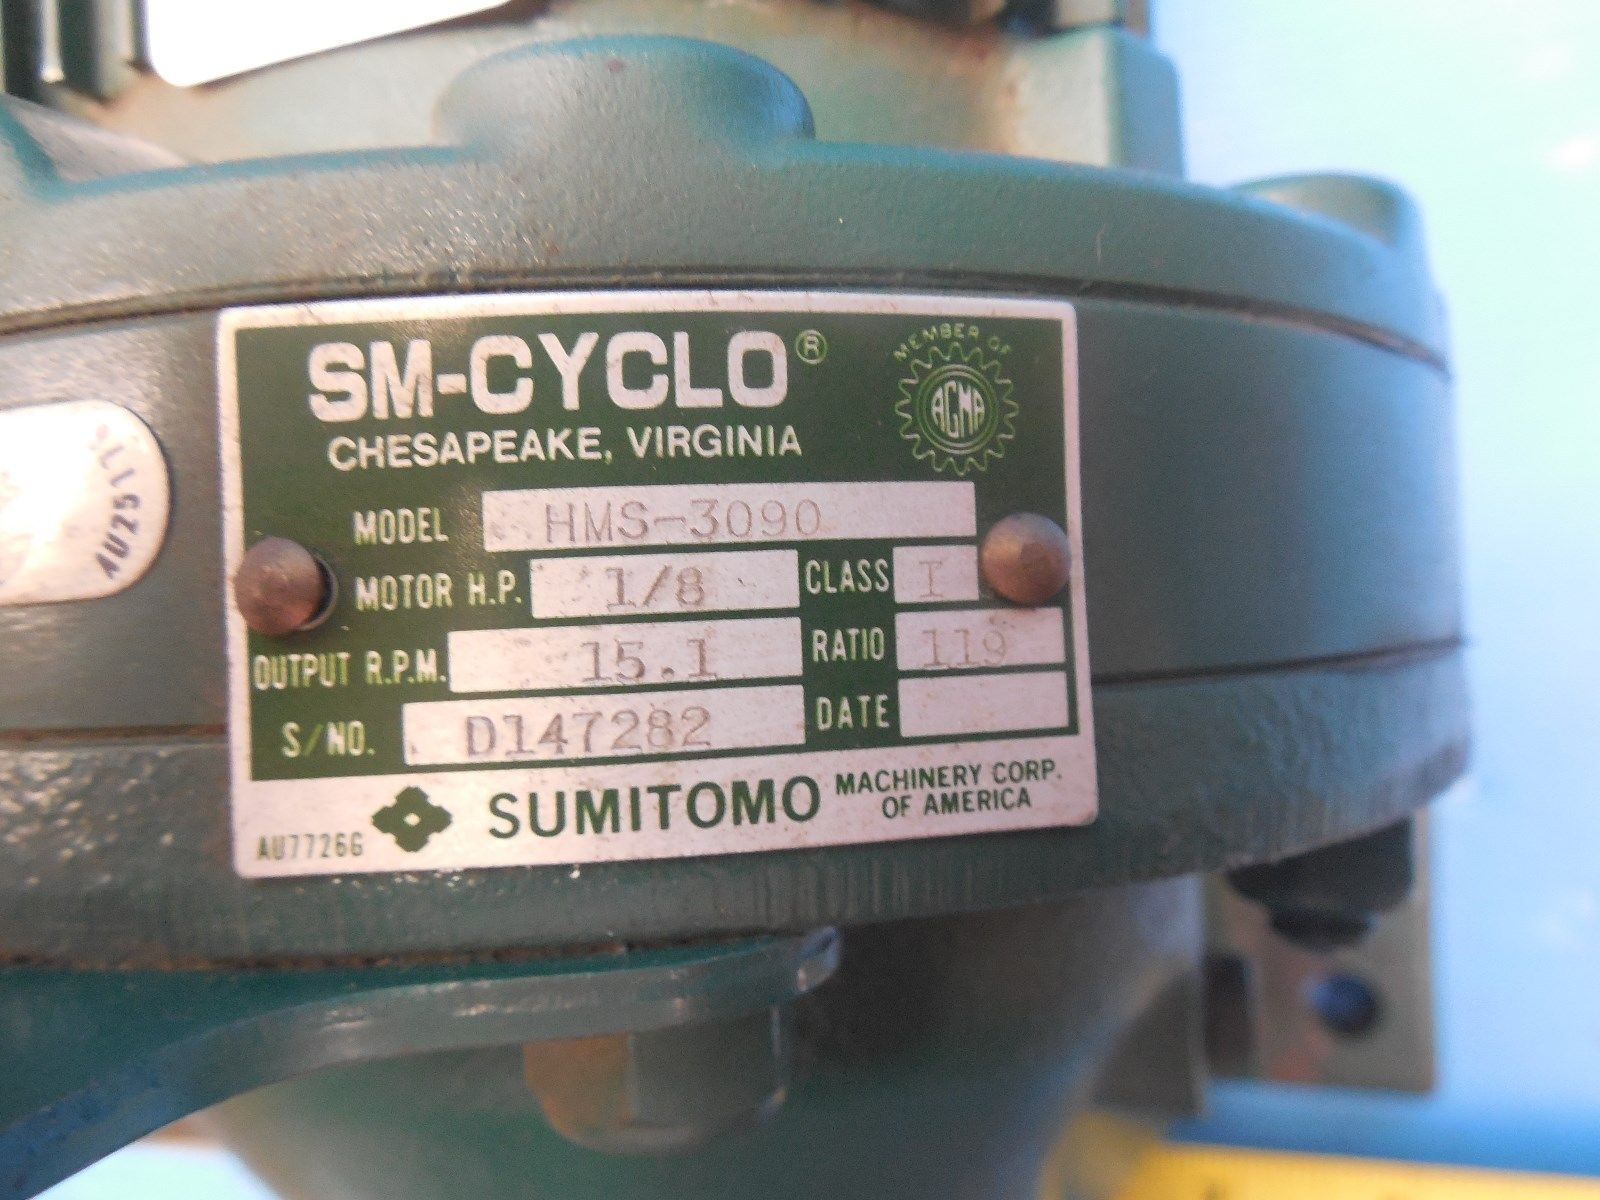 NEW SUMITOMO HMS 3090 1/8 HP 3 PHASE INDUCTION MOTOR 1730 RPM INDUSTRIAL TOOLS